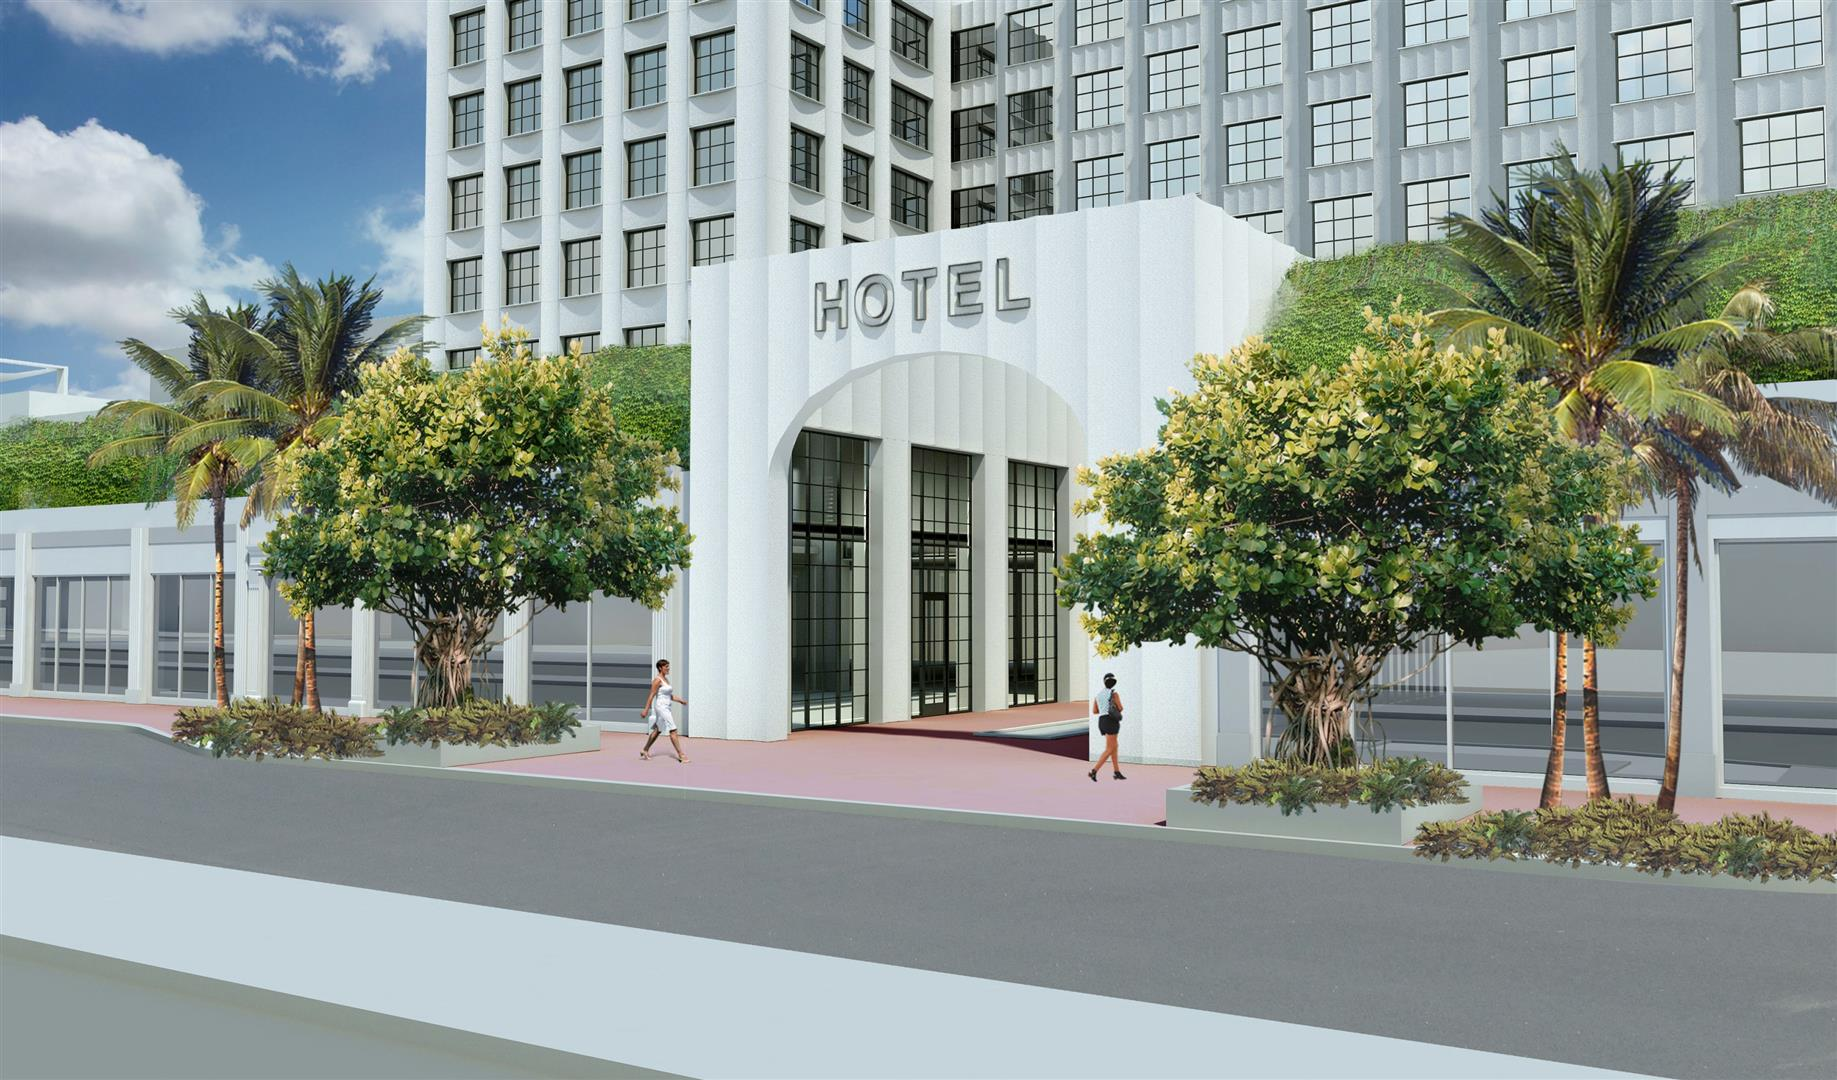 6th & Washington Rendering